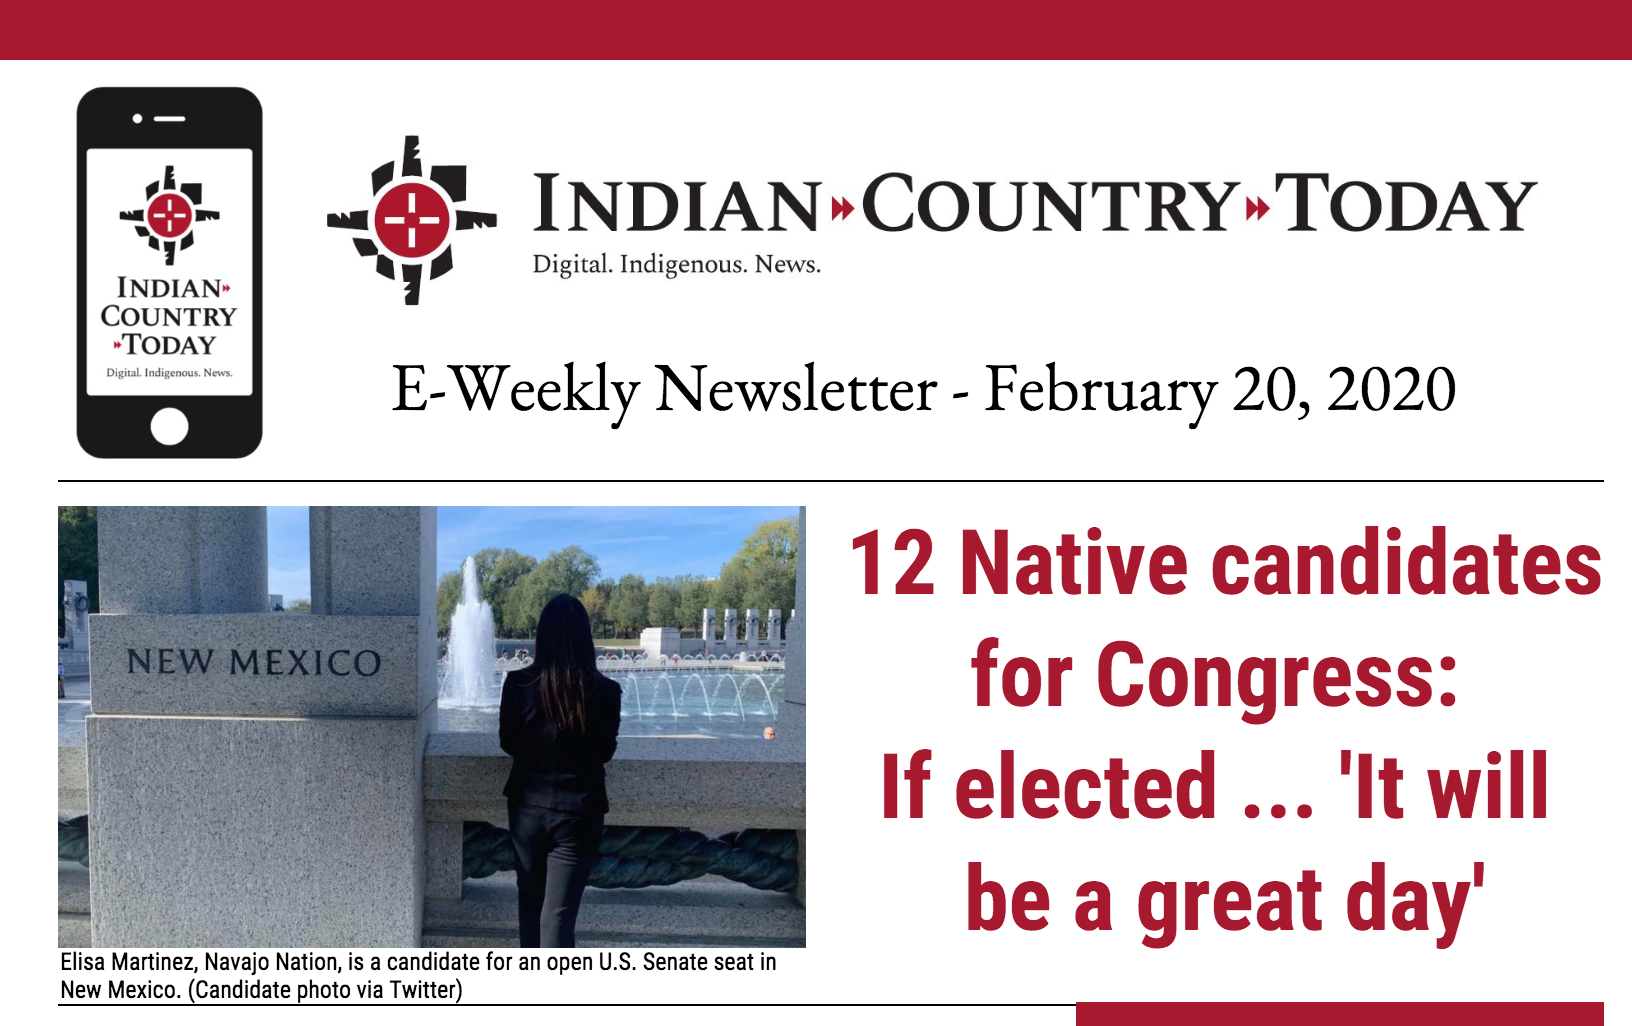 Indian Country Today E-Weekly Newsletter for February 20, 2020